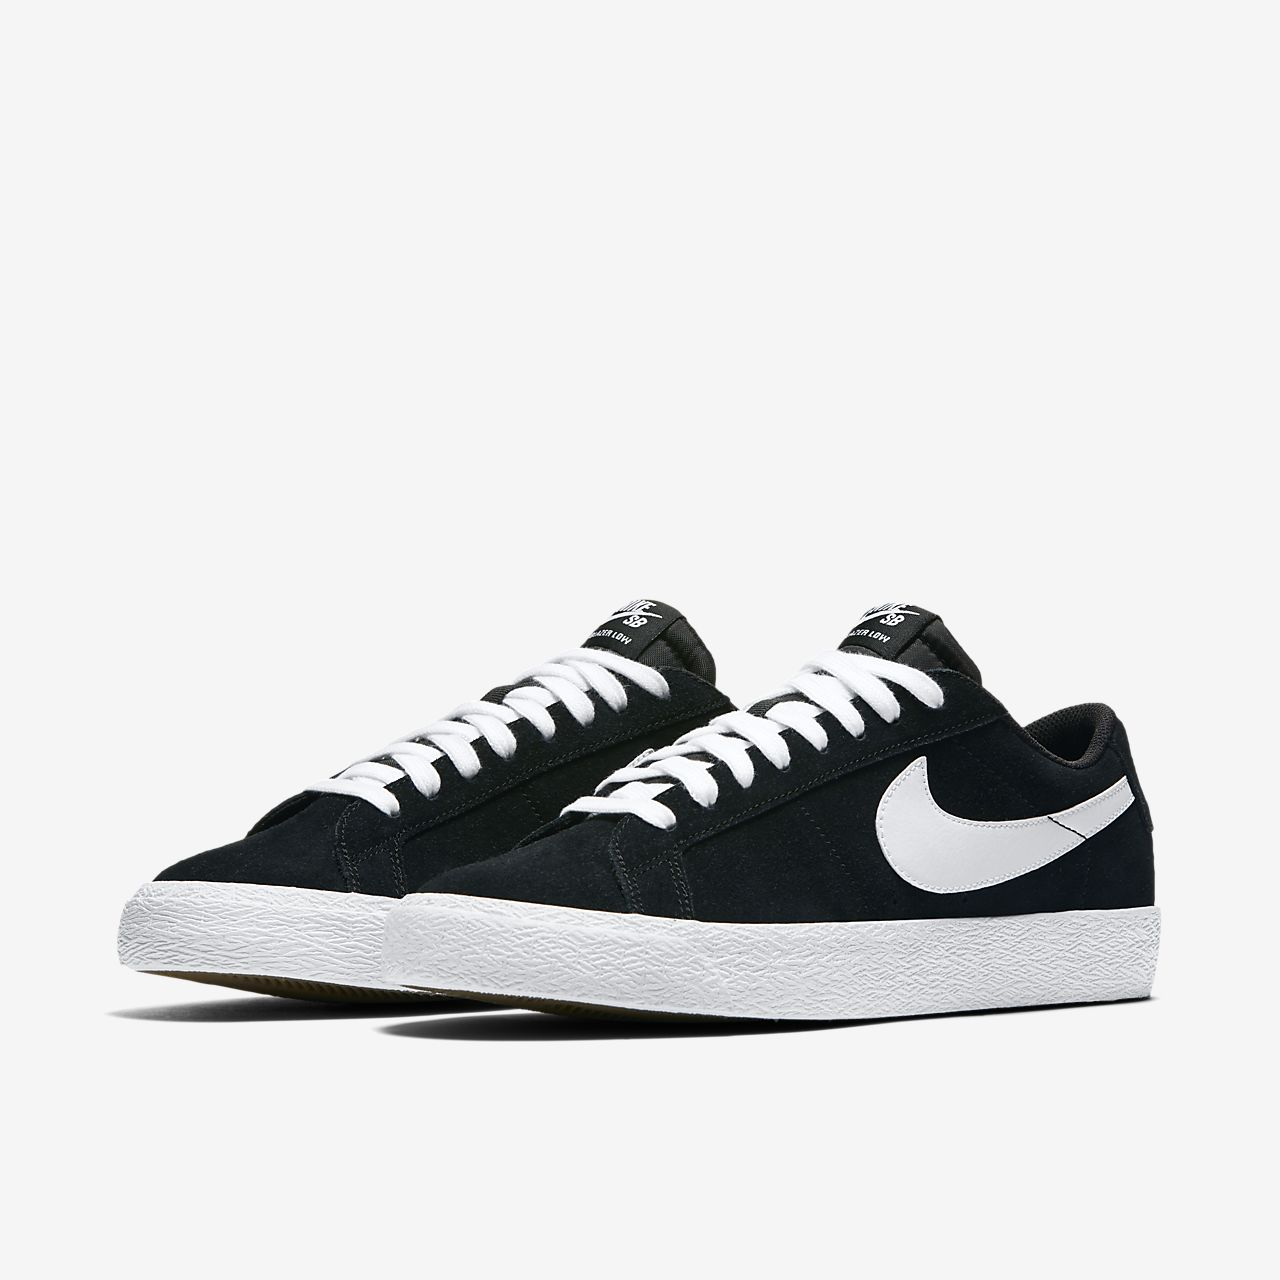 separation shoes 7b250 d030e ... Nike SB Blazer Zoom Low Men s Skateboarding Shoe